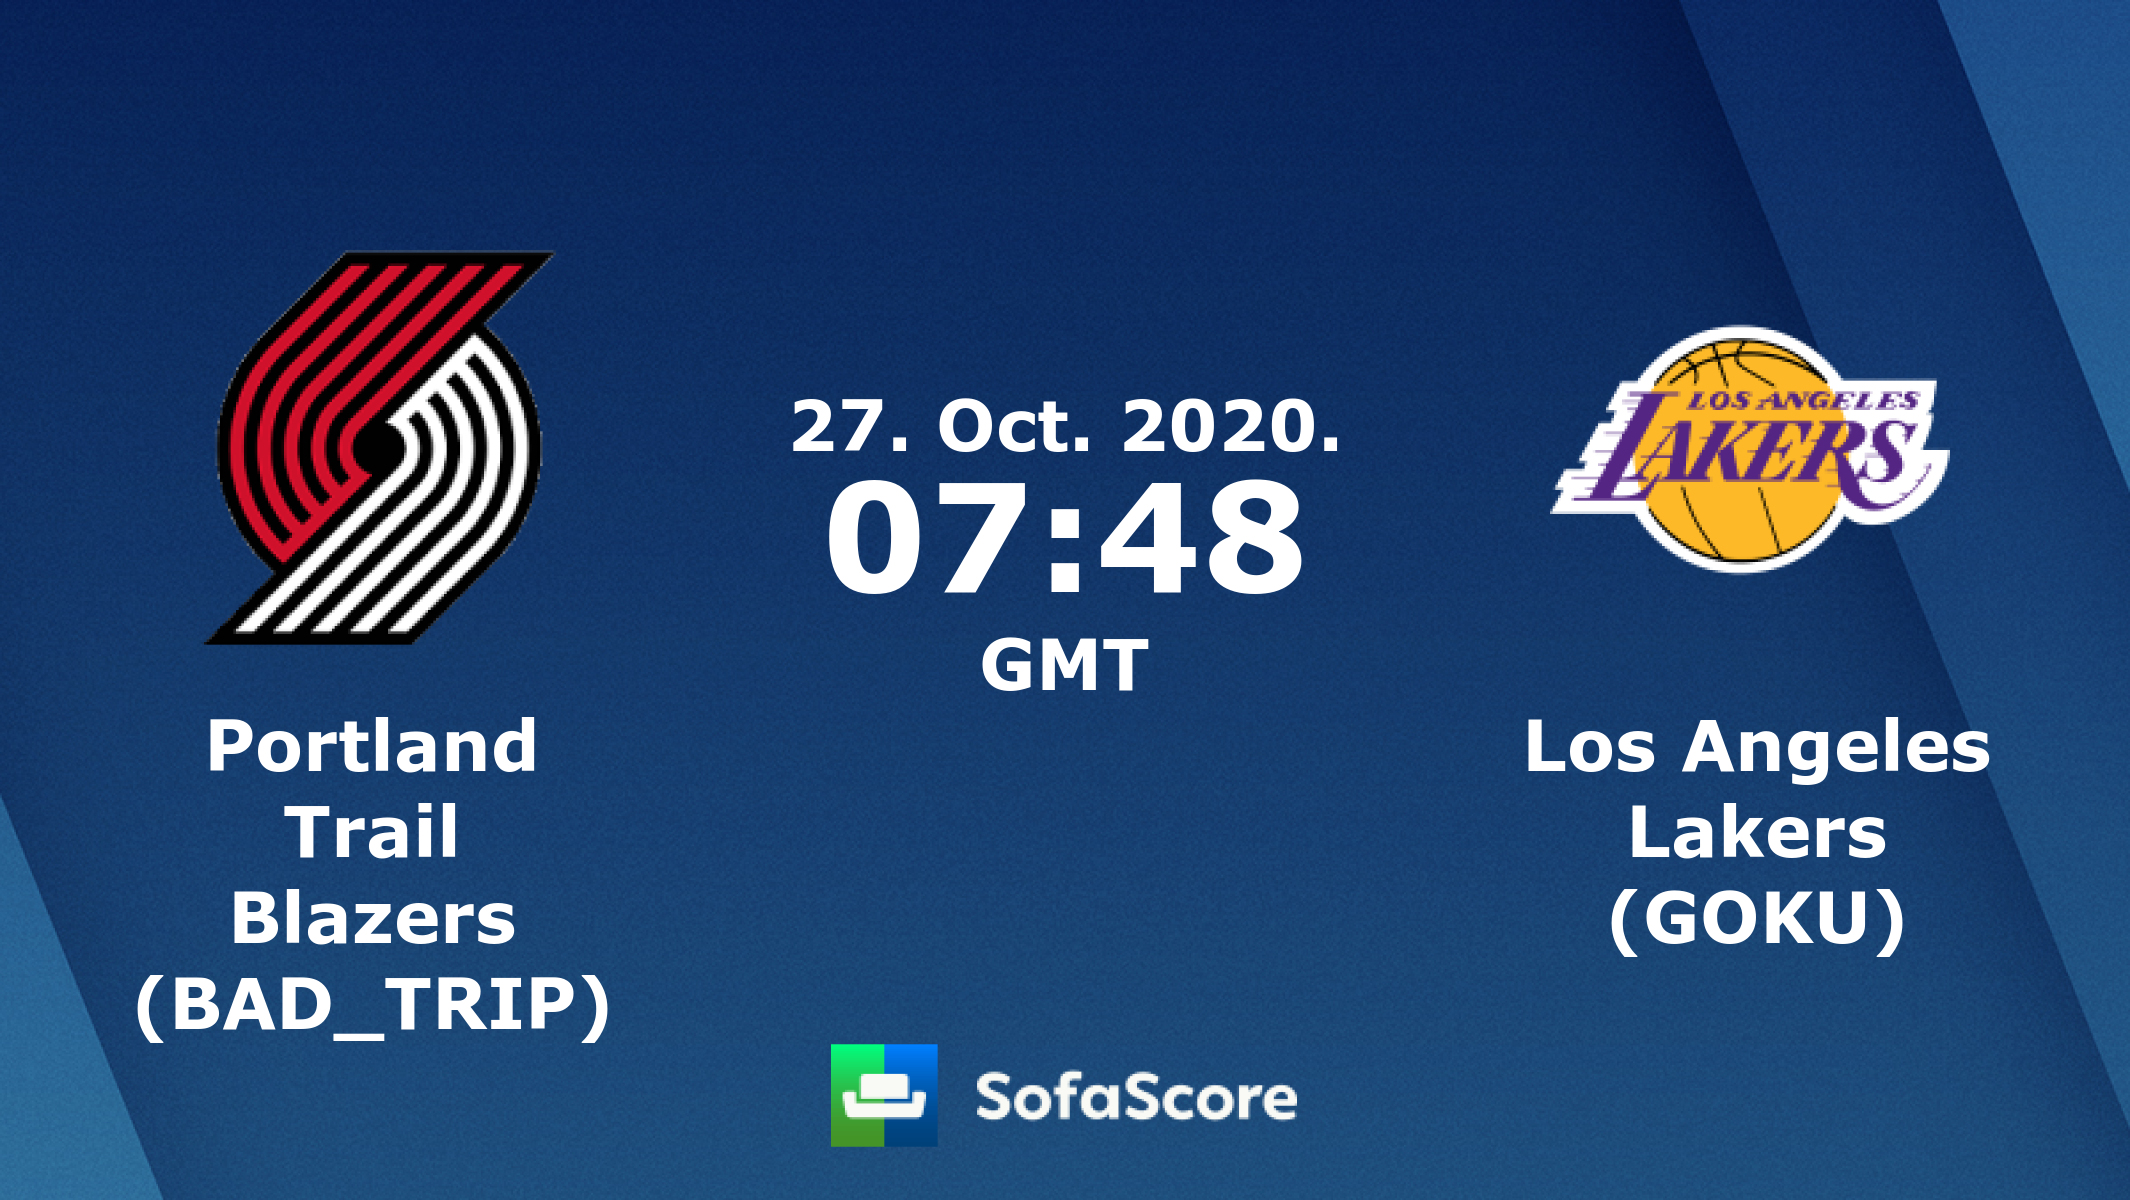 Portland Trail Blazers Bad Trip Los Angeles Lakers Goku Live Score Video Stream And H2h Results Sofascore